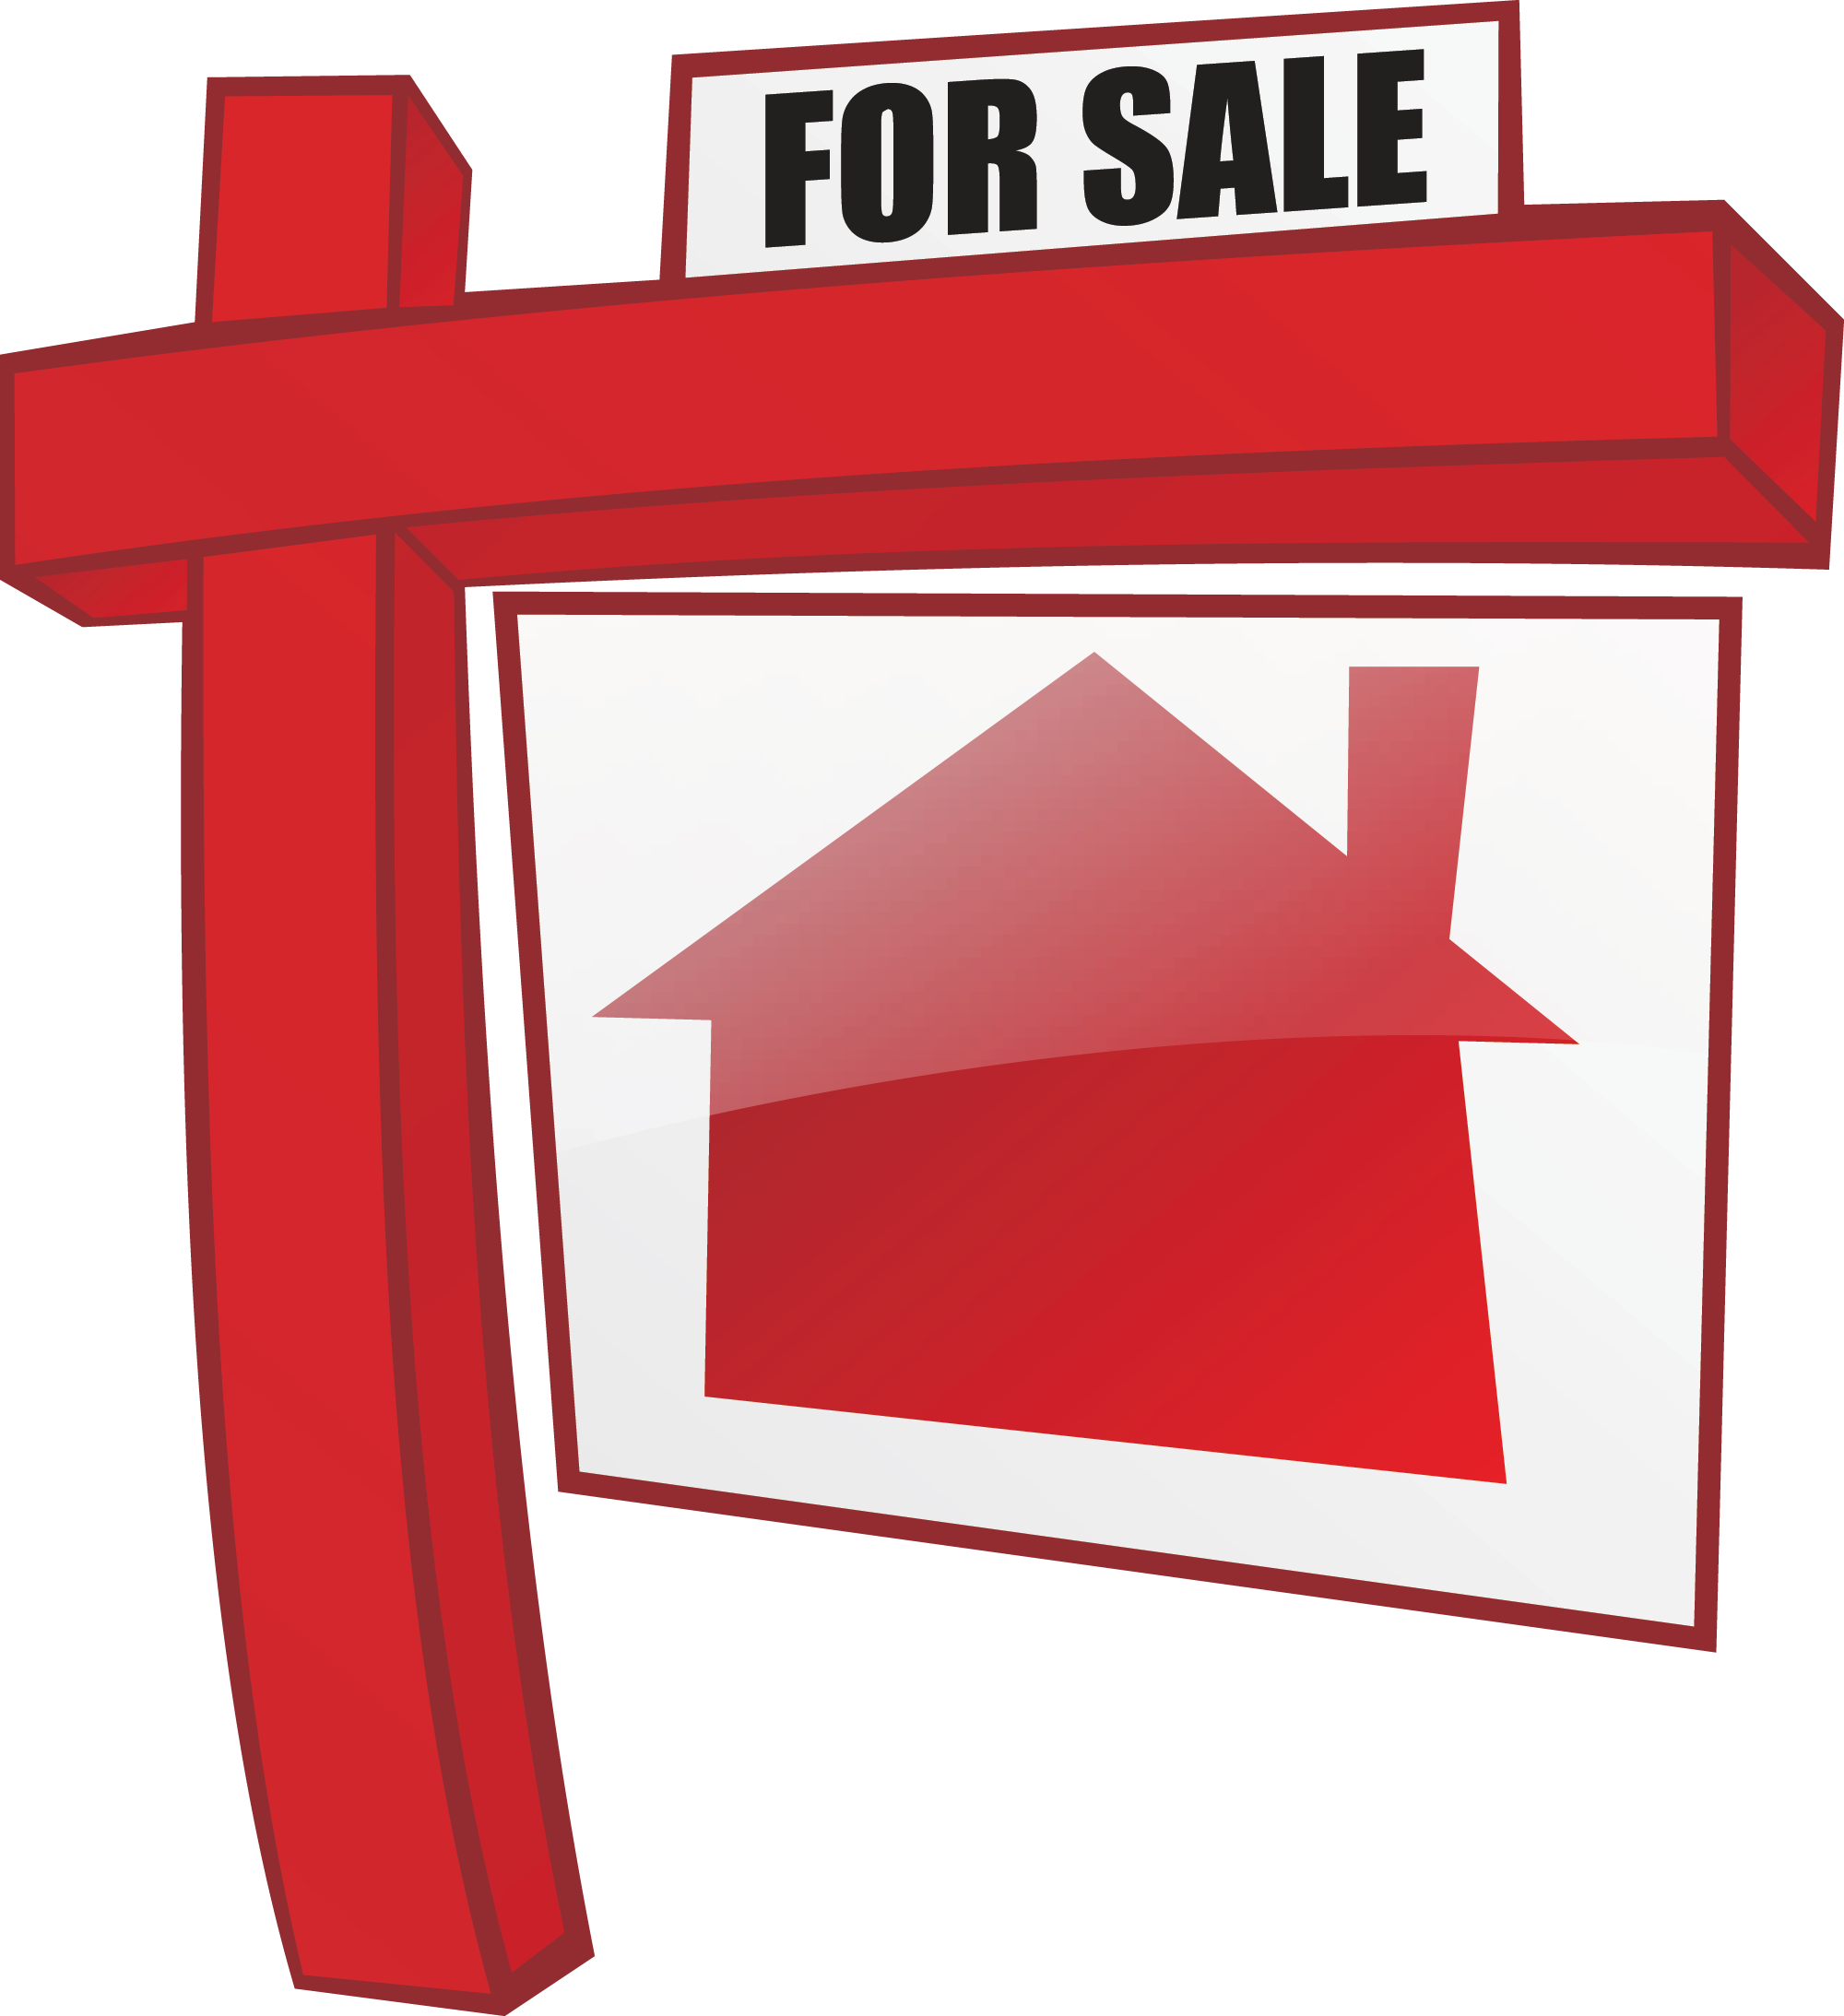 House for sale incep. Gate clipart new home